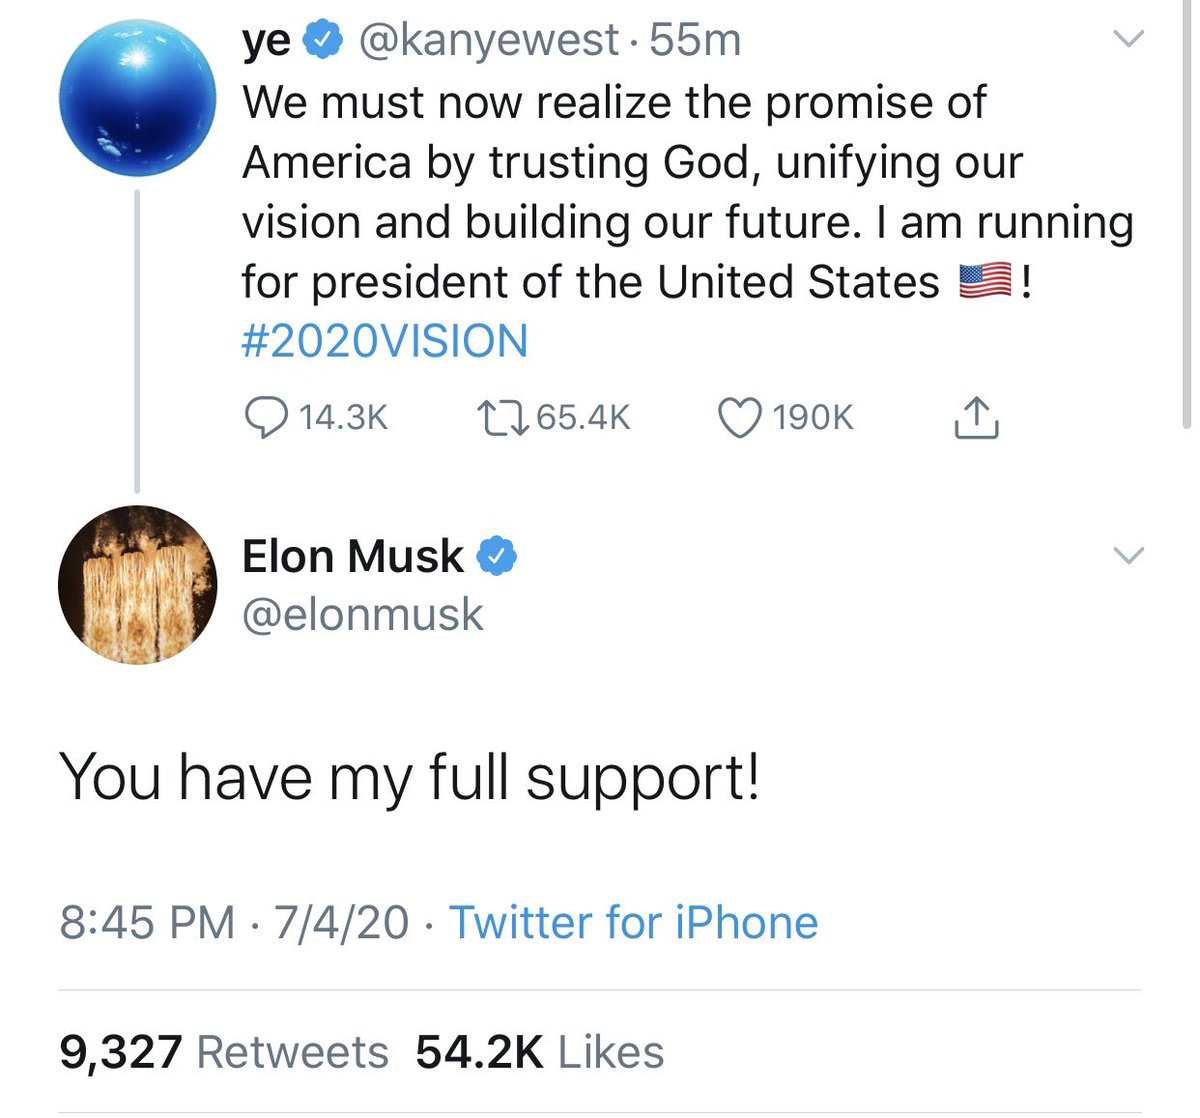 Kanye West and Elon Musk are treating the most consequential election of our lifetime as a joke - consequences their money will shield them from.  We're sick of being trolled by oversized egos.  Step up in a meaningful way to help us defeat Trump or sit down quietly.  #2020Vision